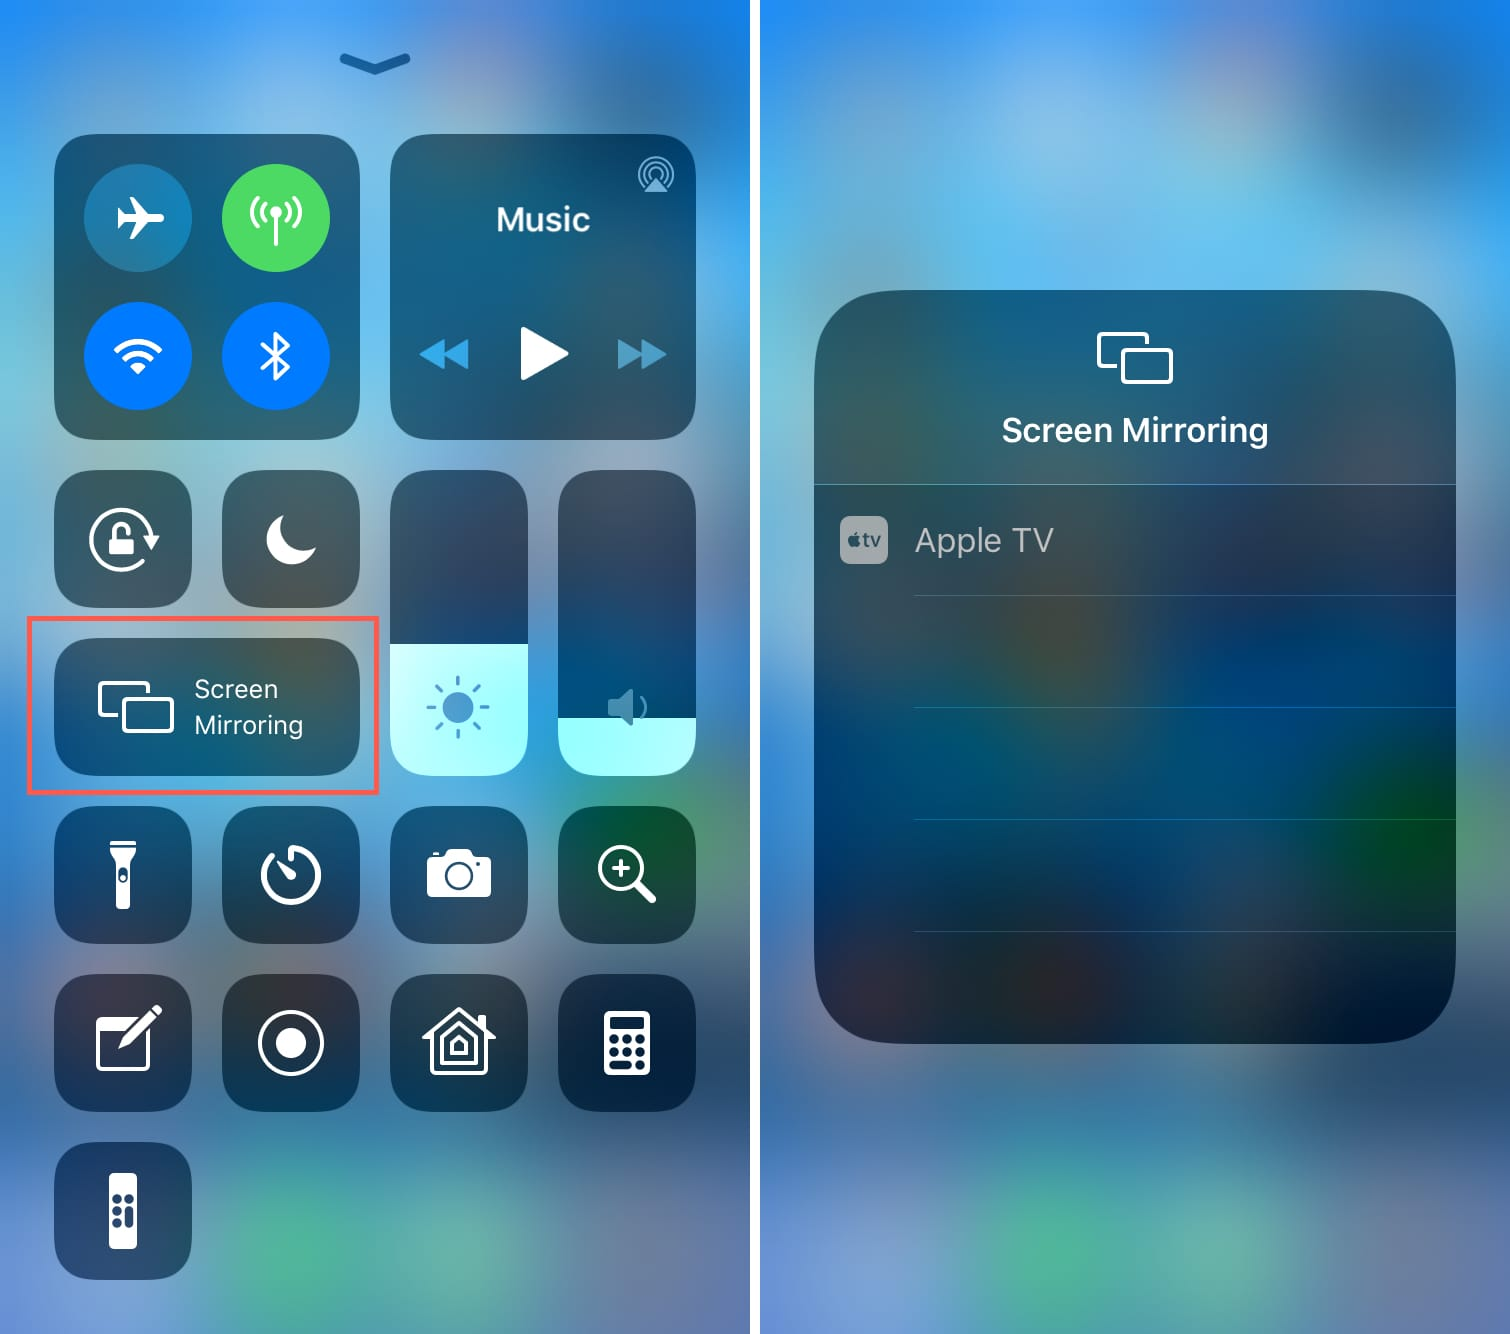 Start Screen Mirroring to Apple TV from iPhone